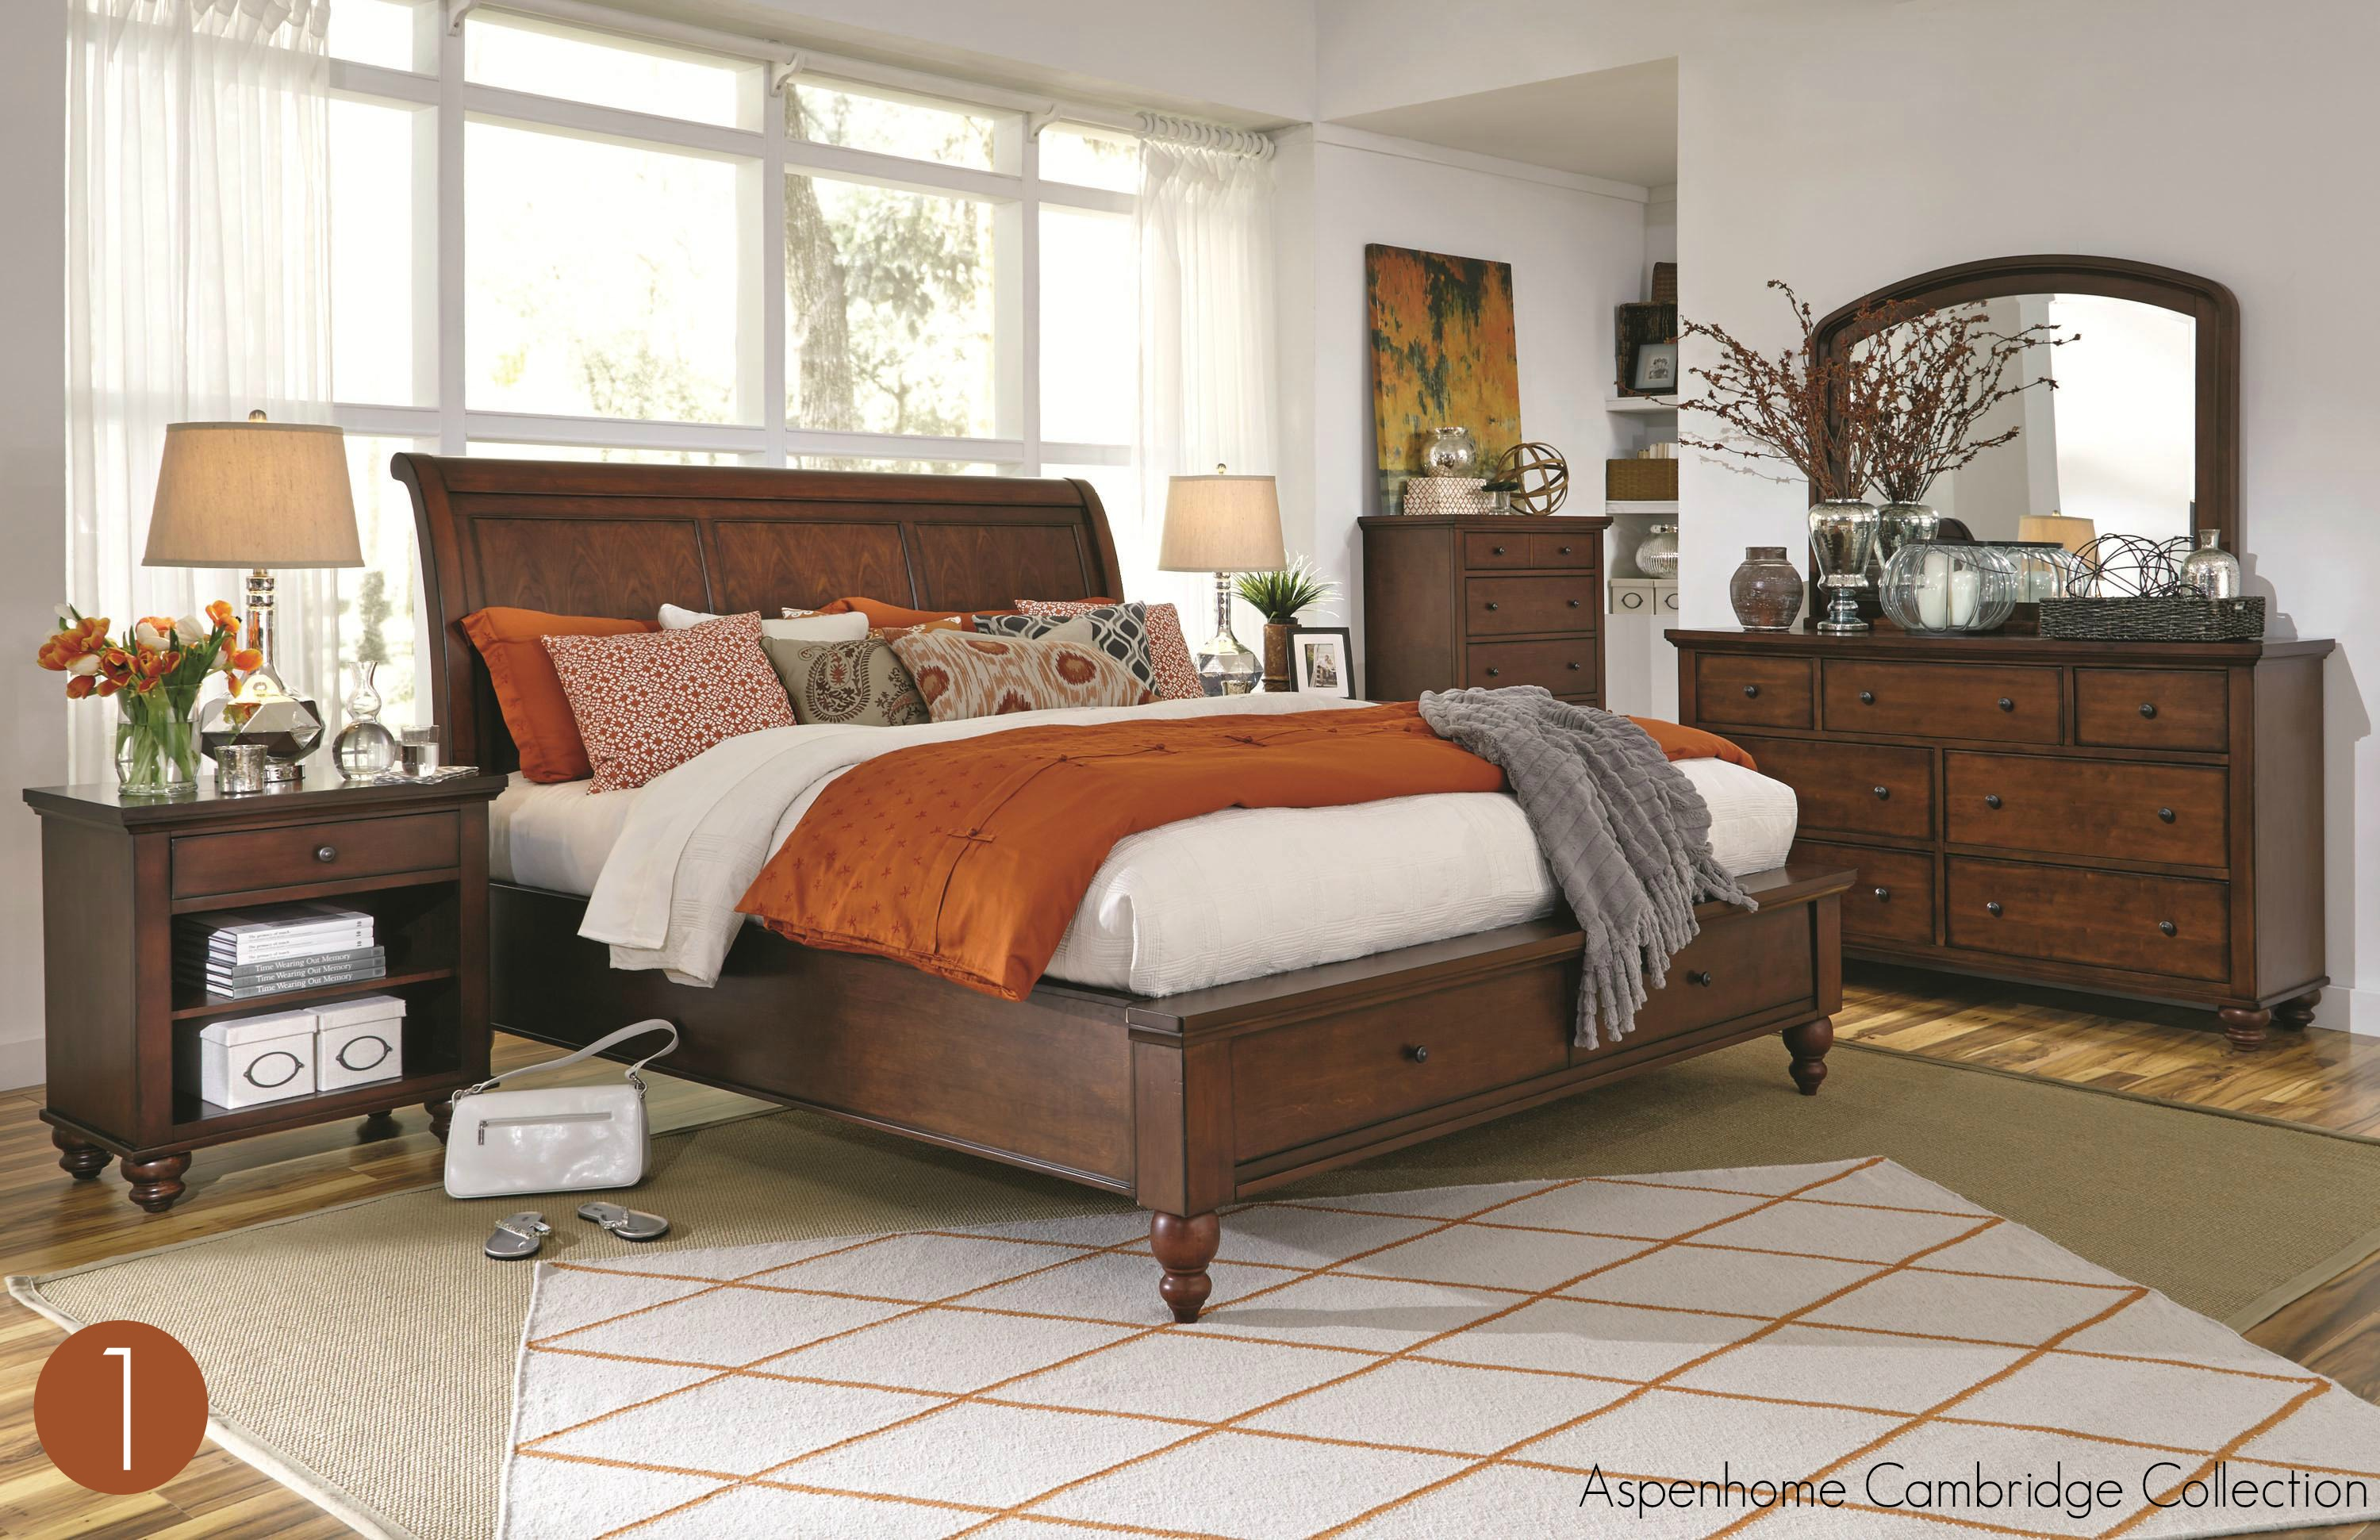 Tori s Top Picks Bedroom Sets